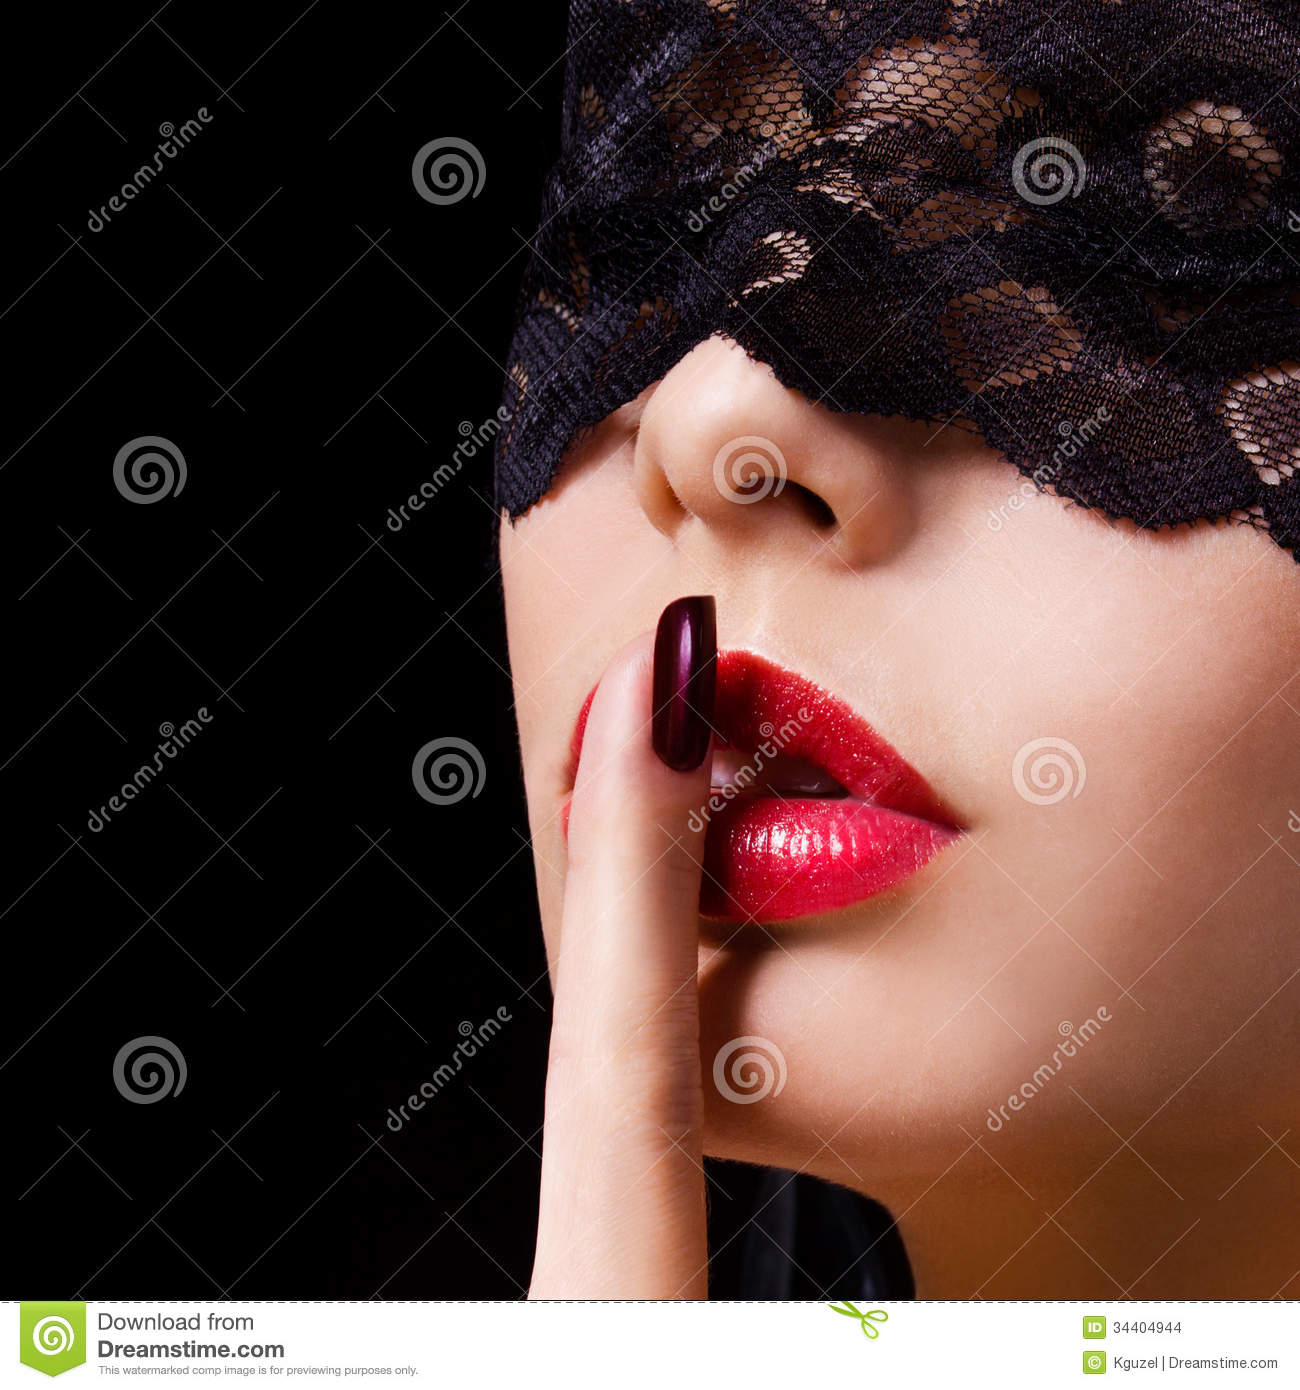 Hush. woman with finger on her red lips showing shush. Erotic girl with lace mask over black